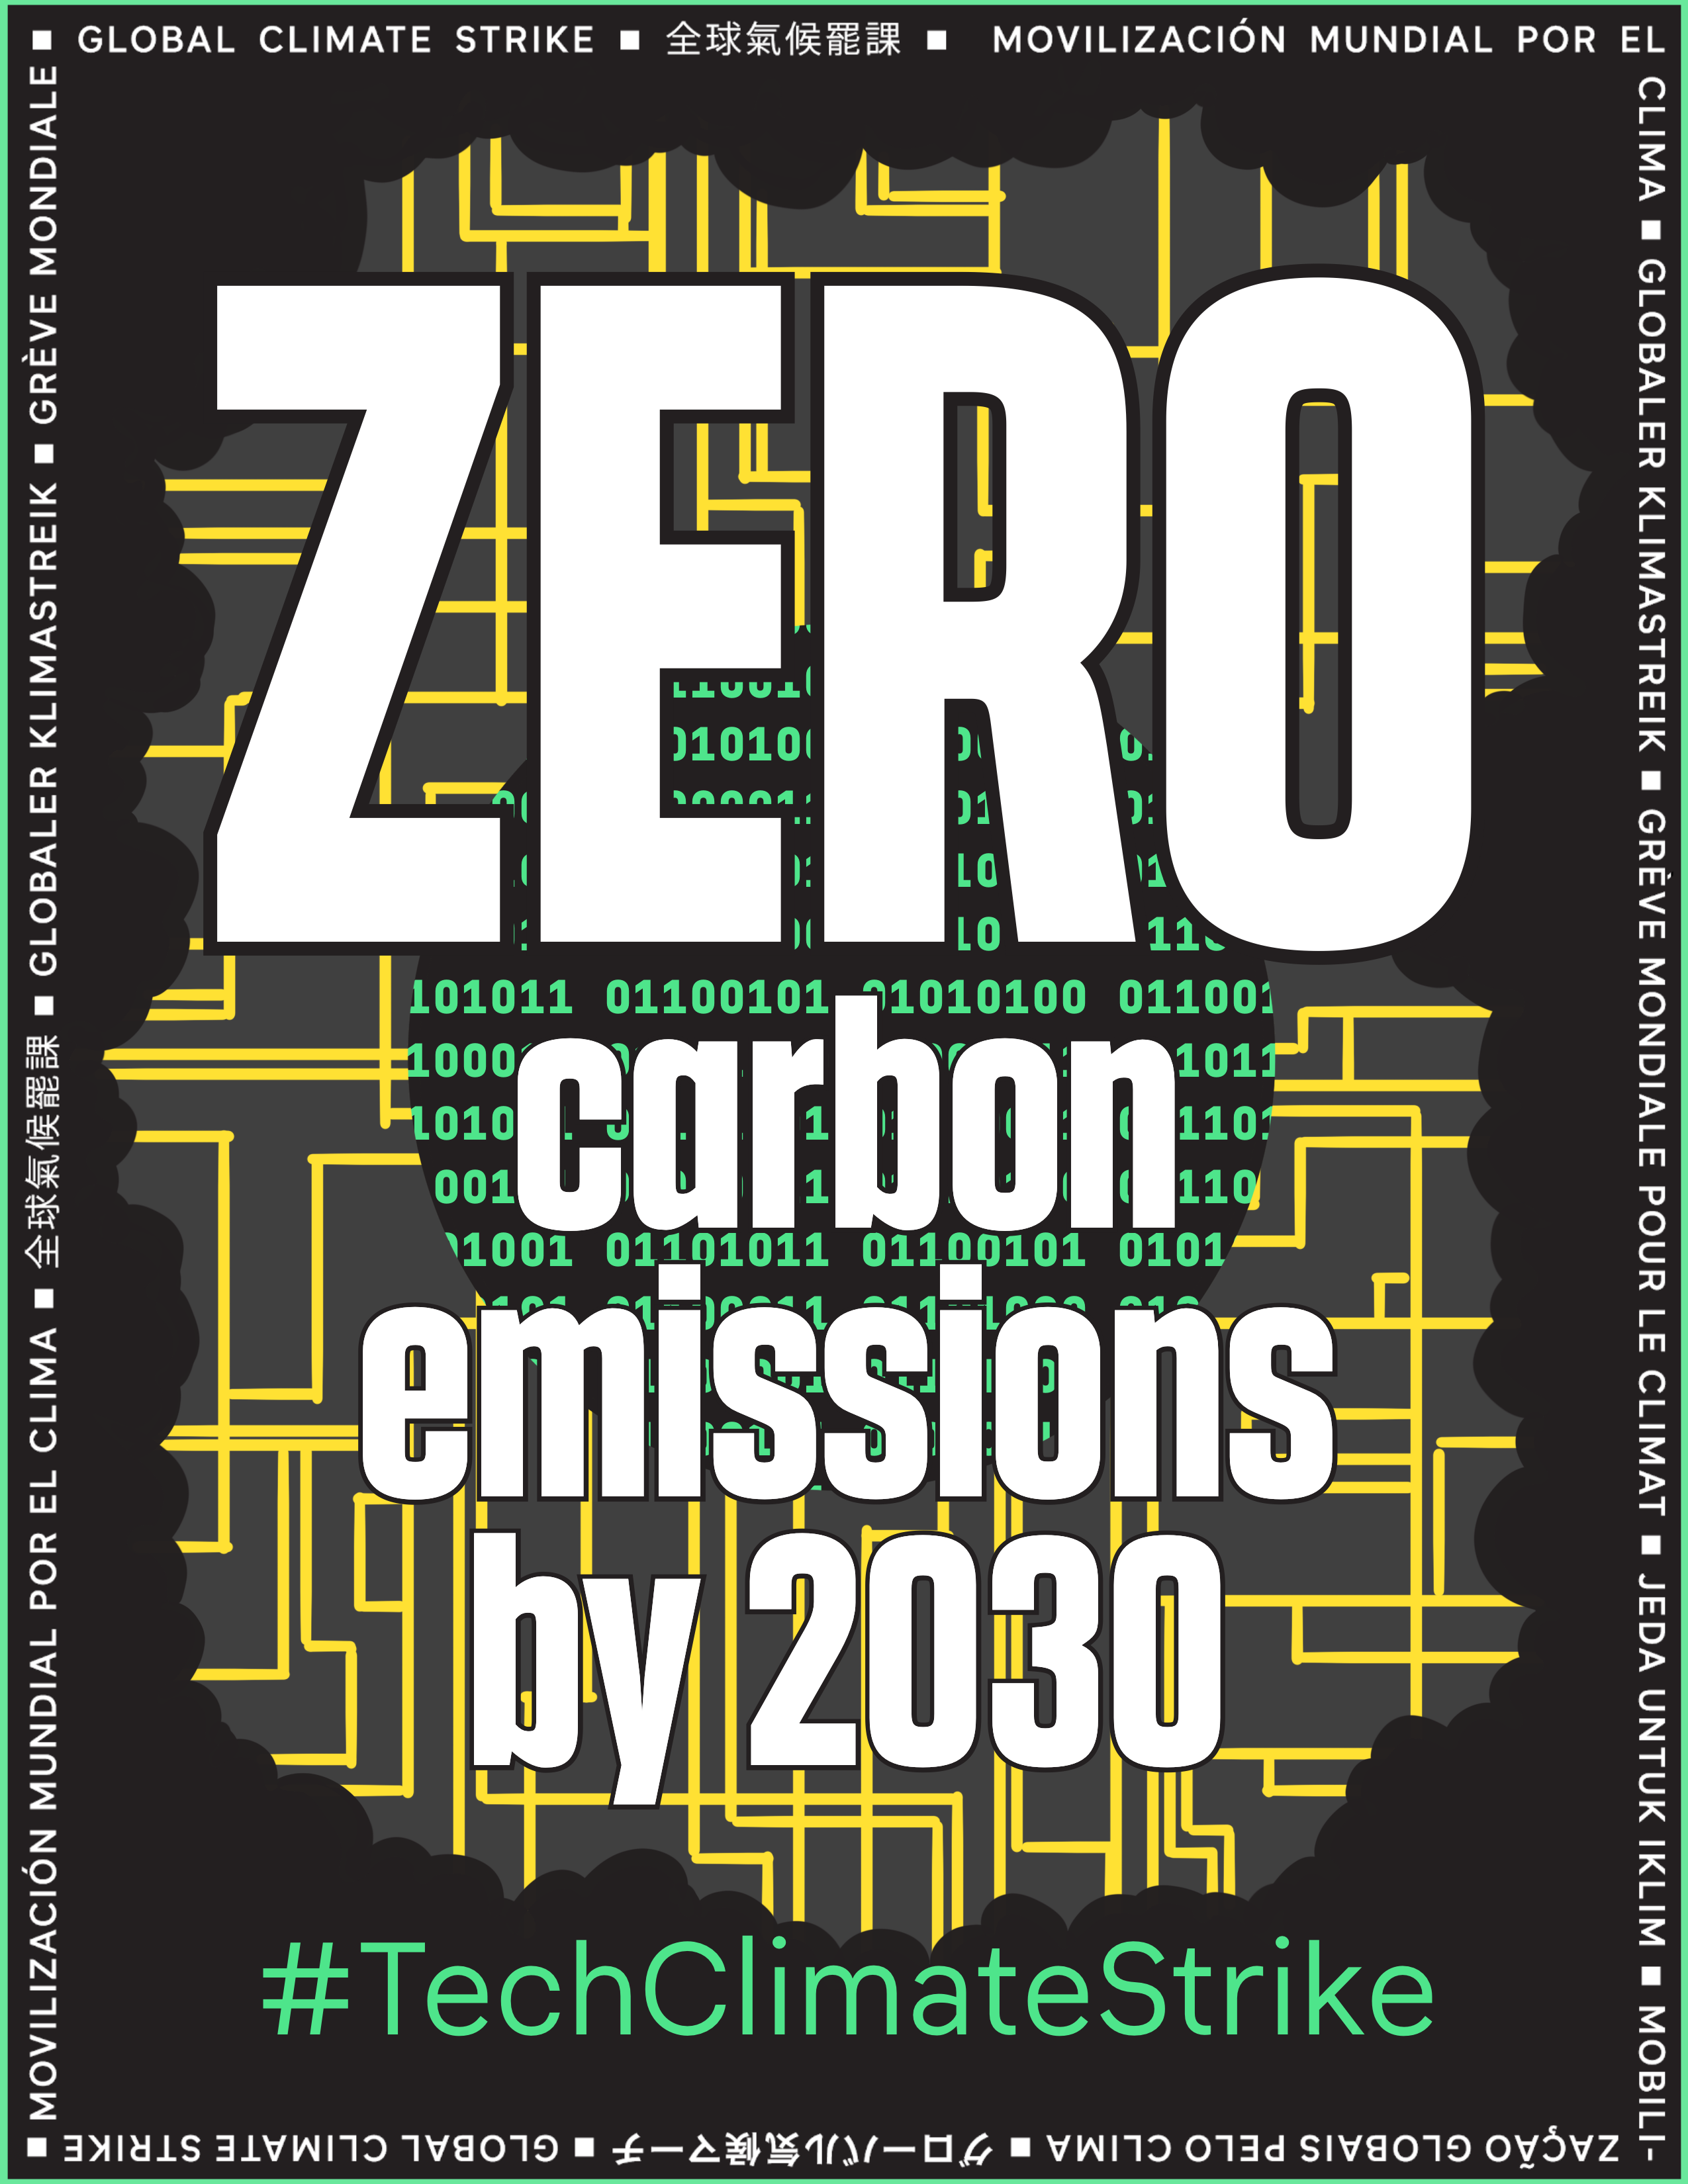 Zero carbon emissions by 2030